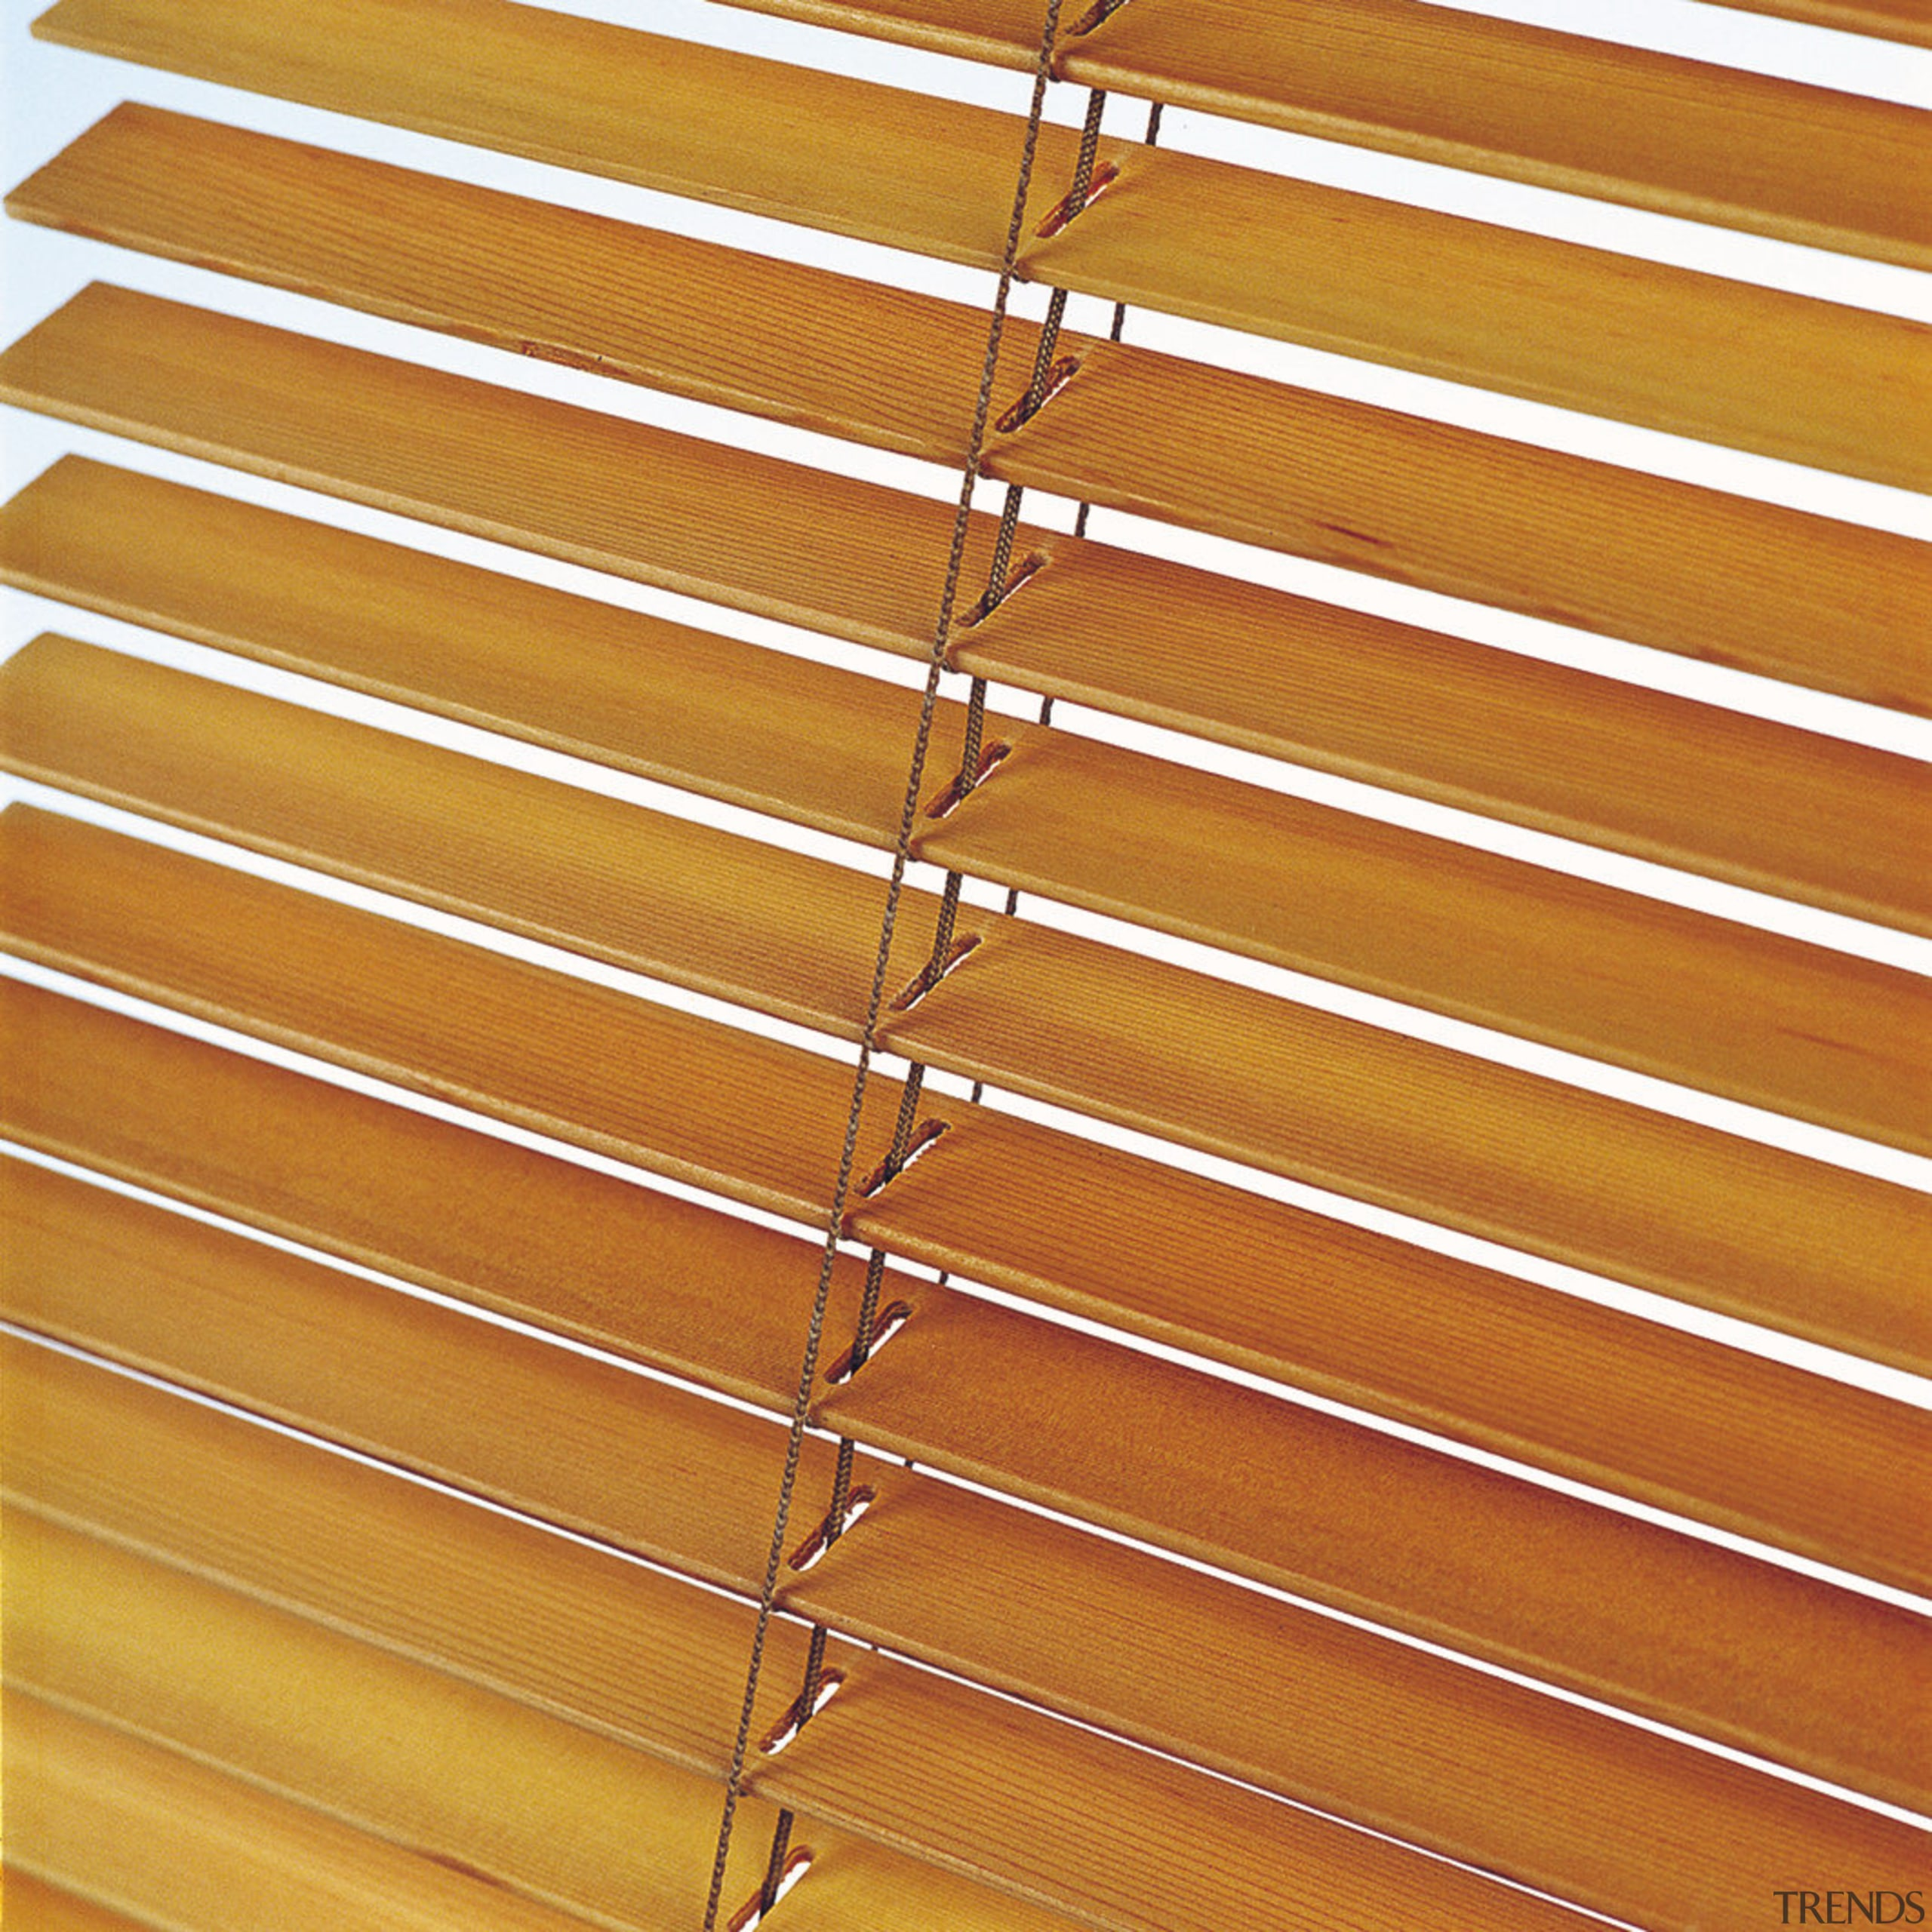 A view of some blinds from Window Treatments. angle, line, material, mesh, metal, wall, window blind, window covering, wood, wood stain, orange, brown